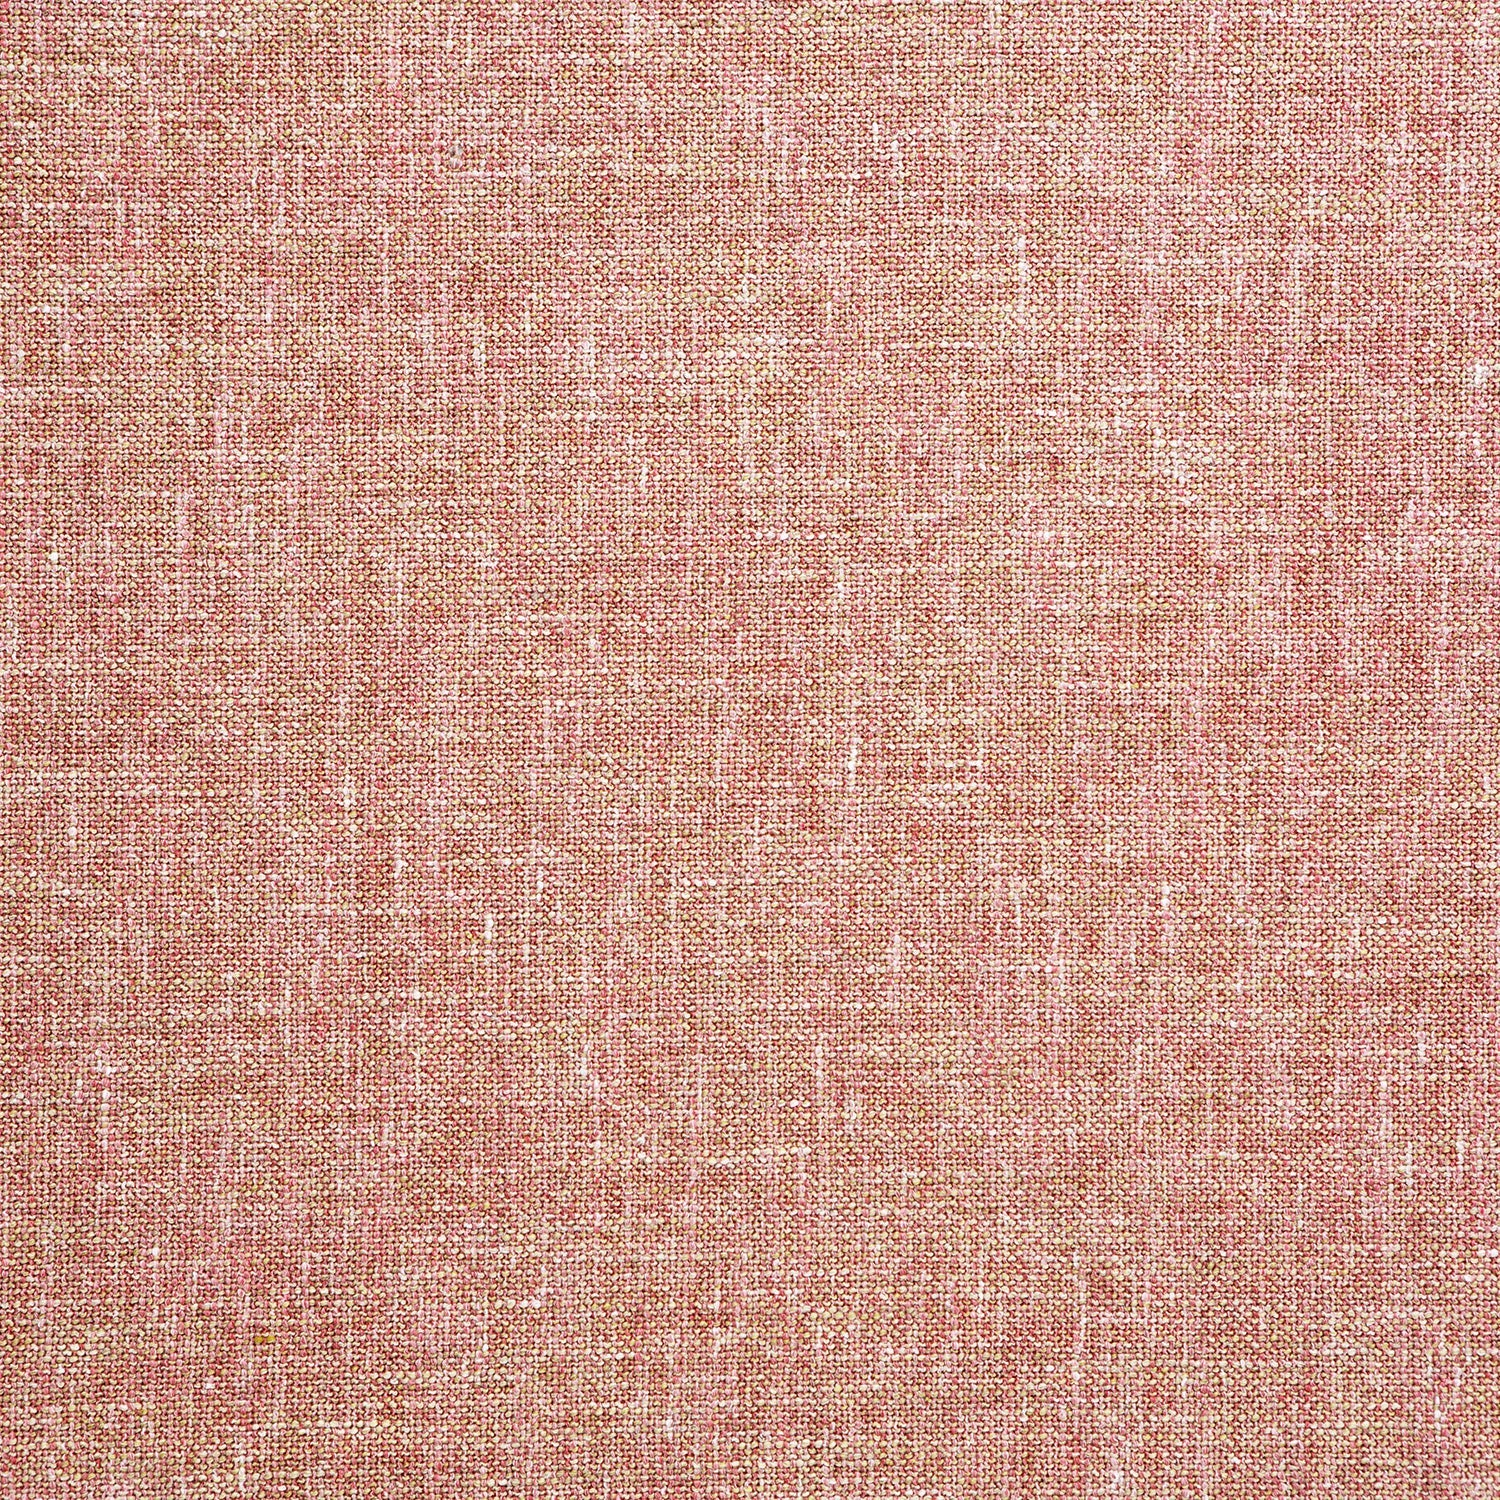 Tweed style upholstery fabric in a peach colour